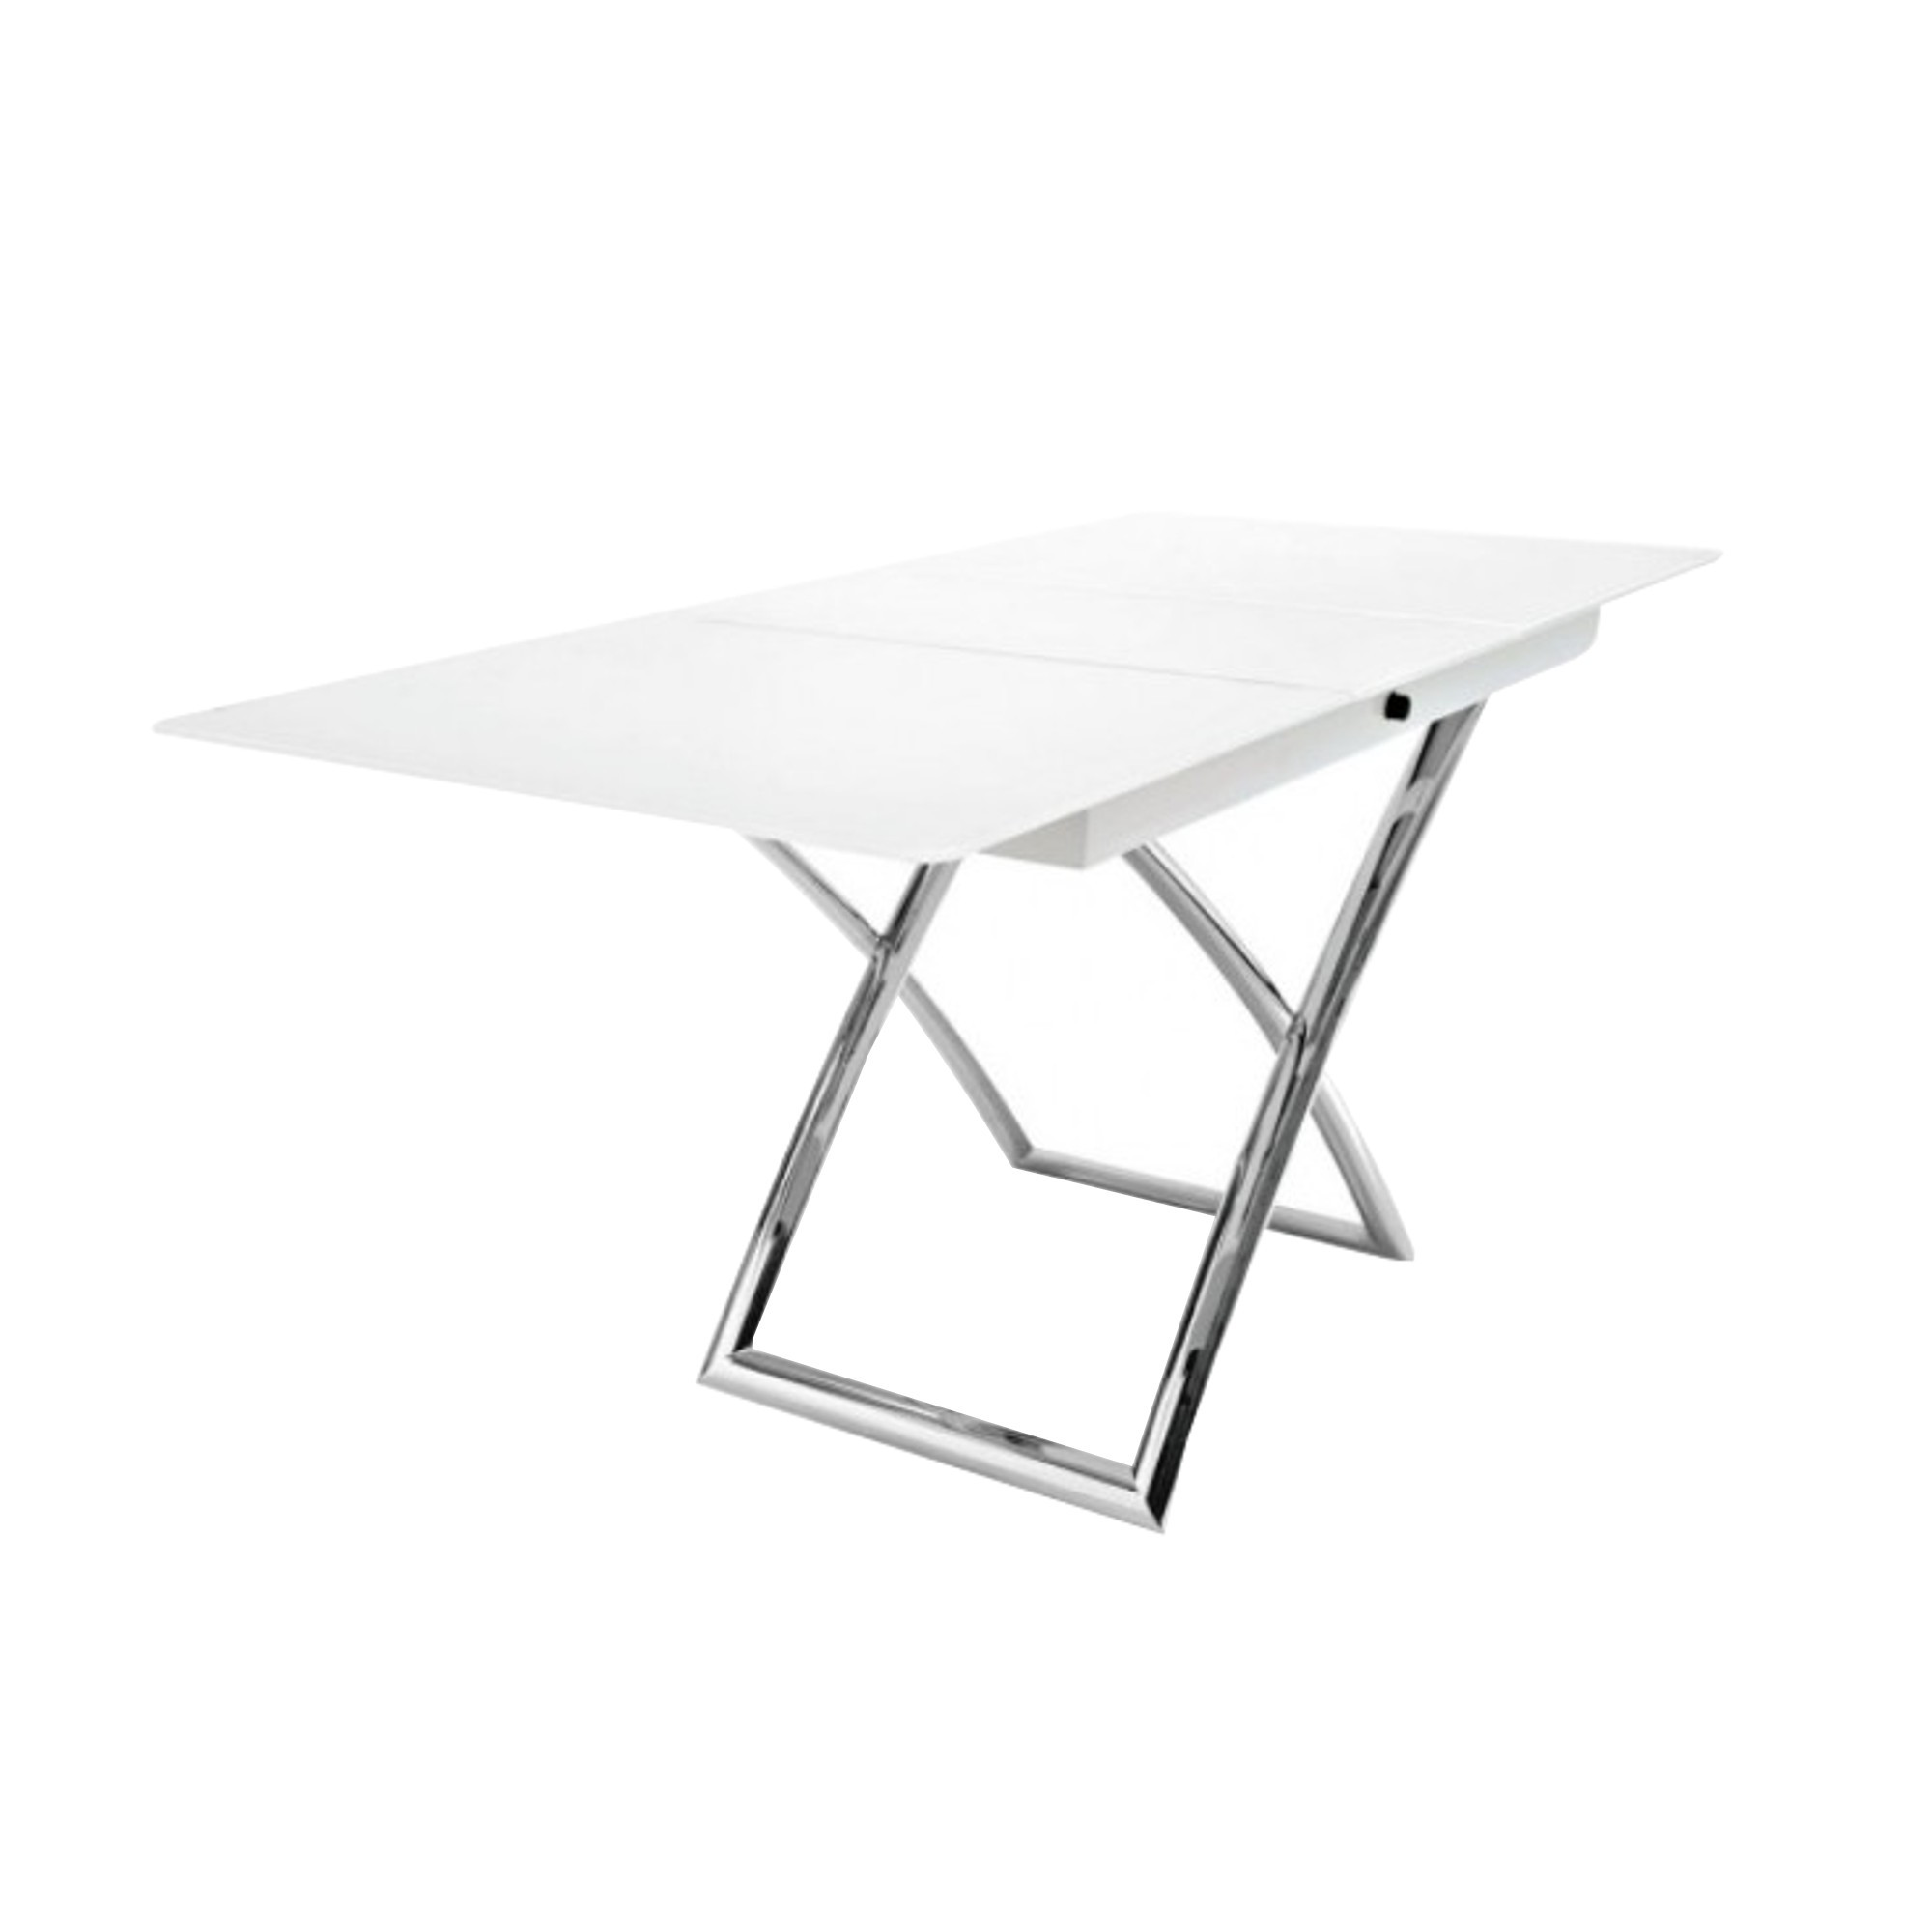 MAGIC-J | Extending Tables | Tables | CONNUBIA BY CALLIGARIS ...